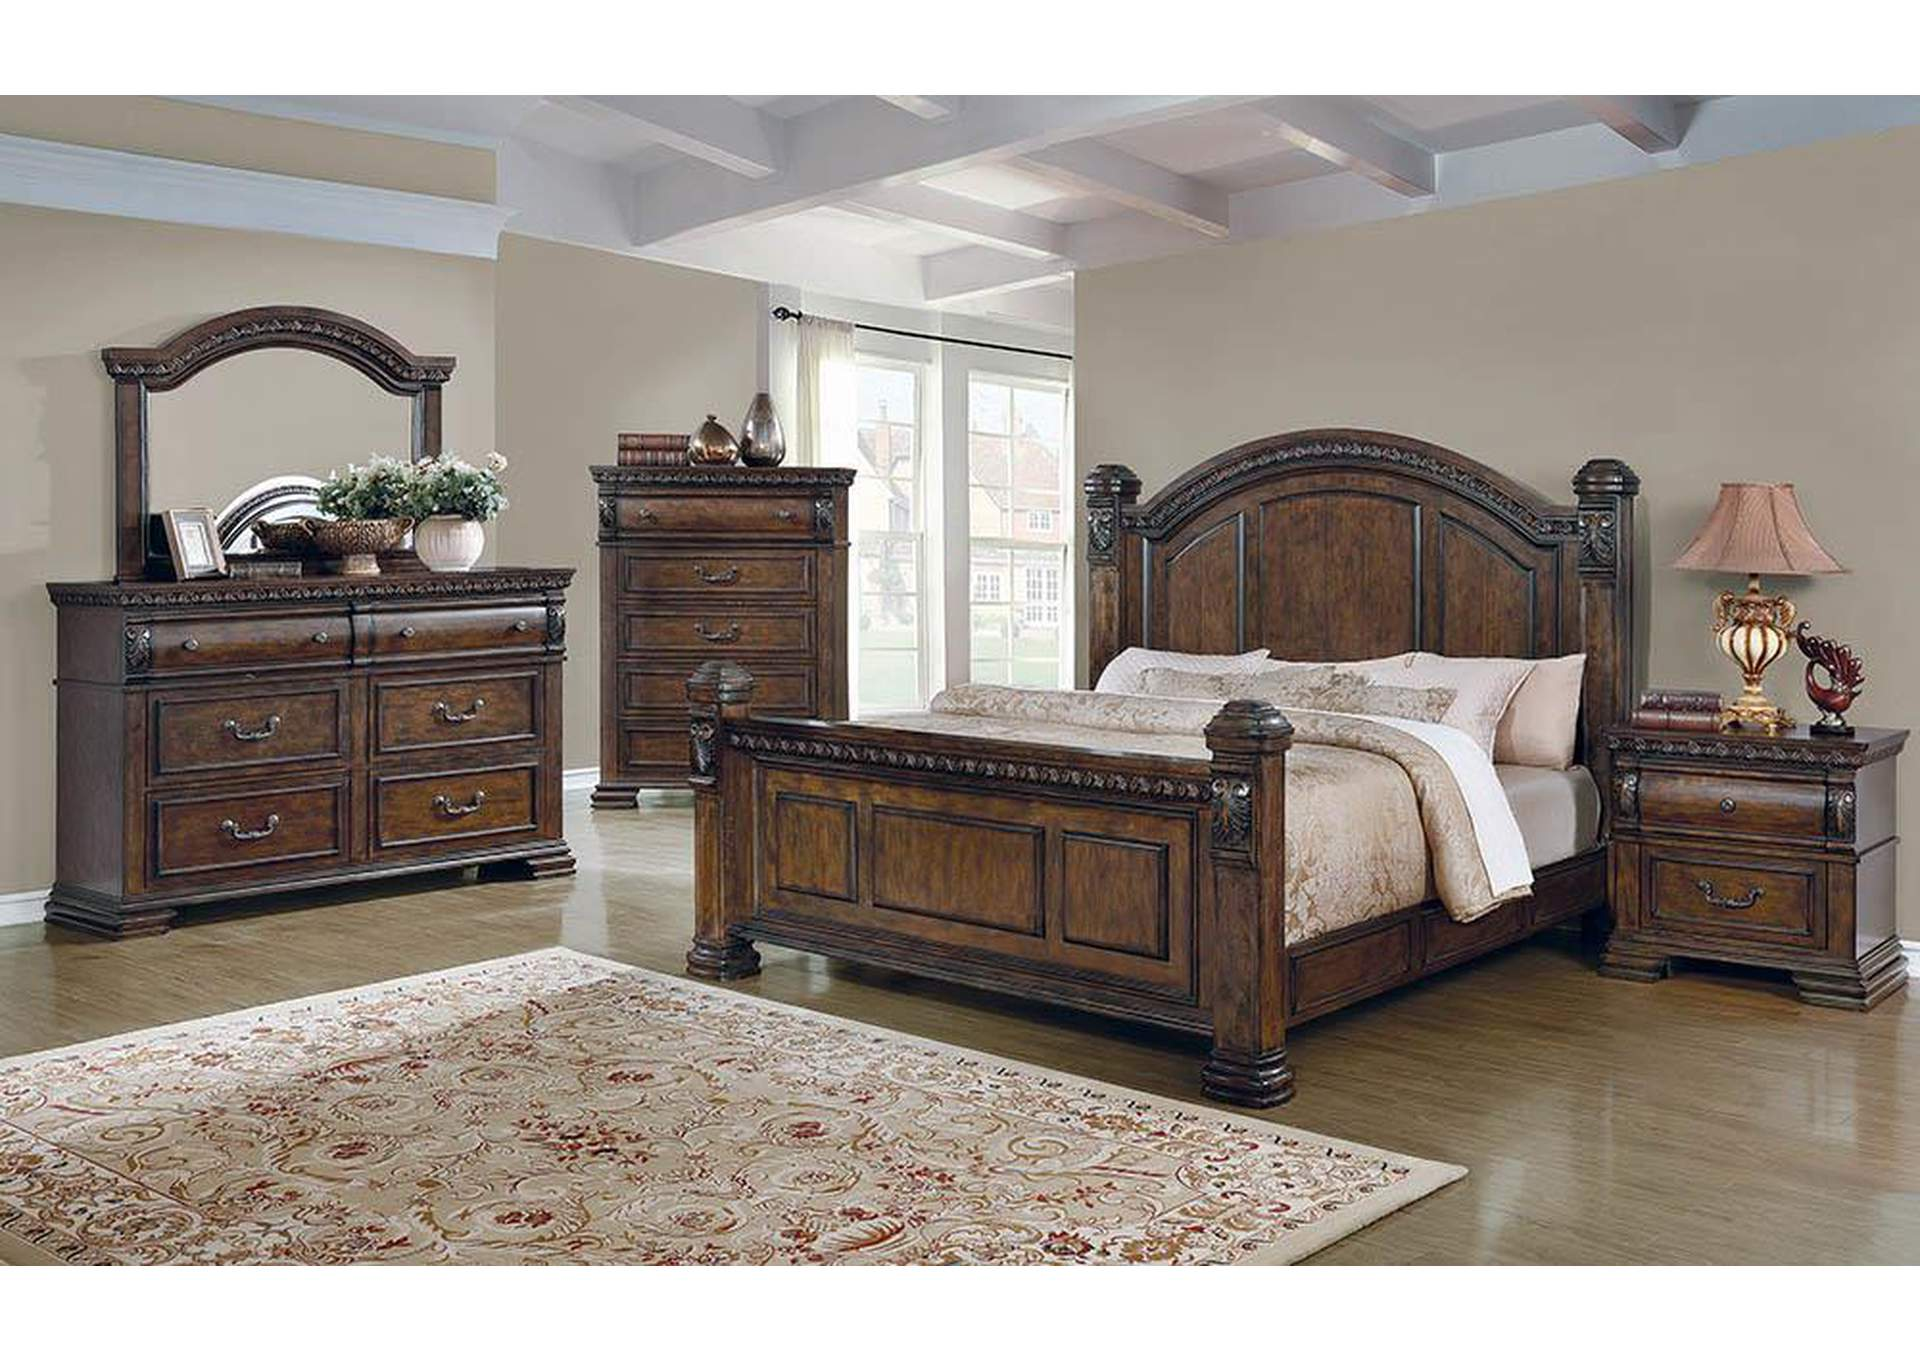 Satterfield Warm Bourbon Queen Bed,Coaster Furniture